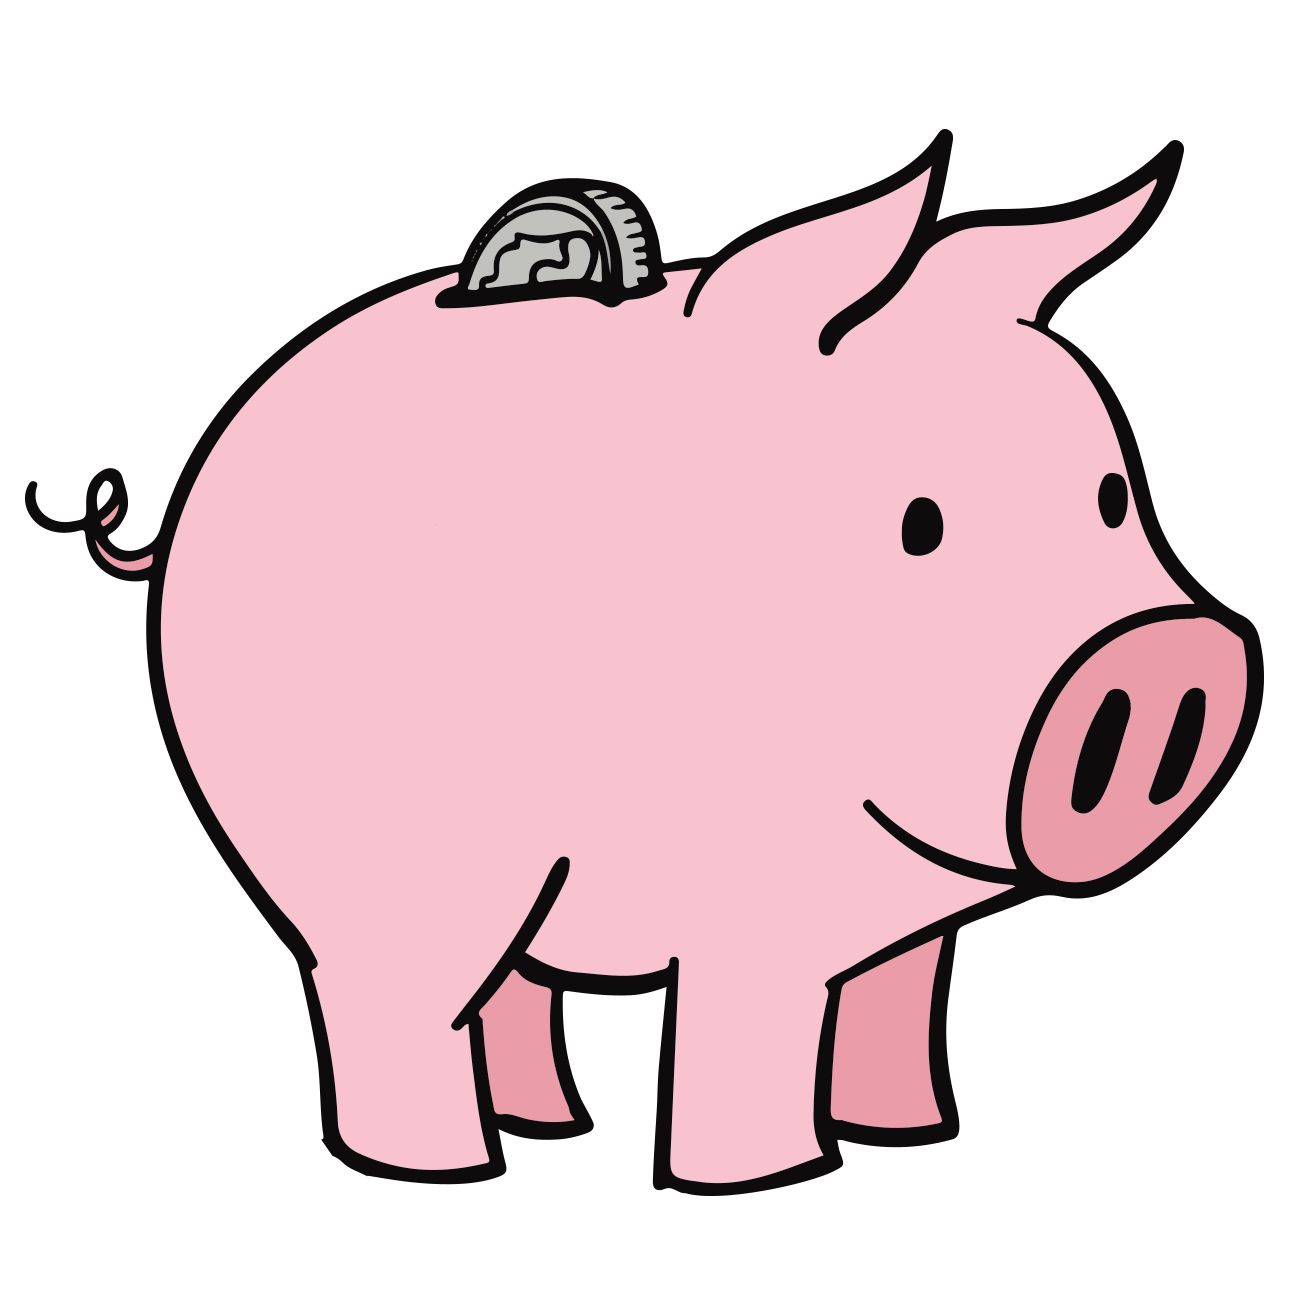 Fathers clipart piggy back ride. Family financial literacy read